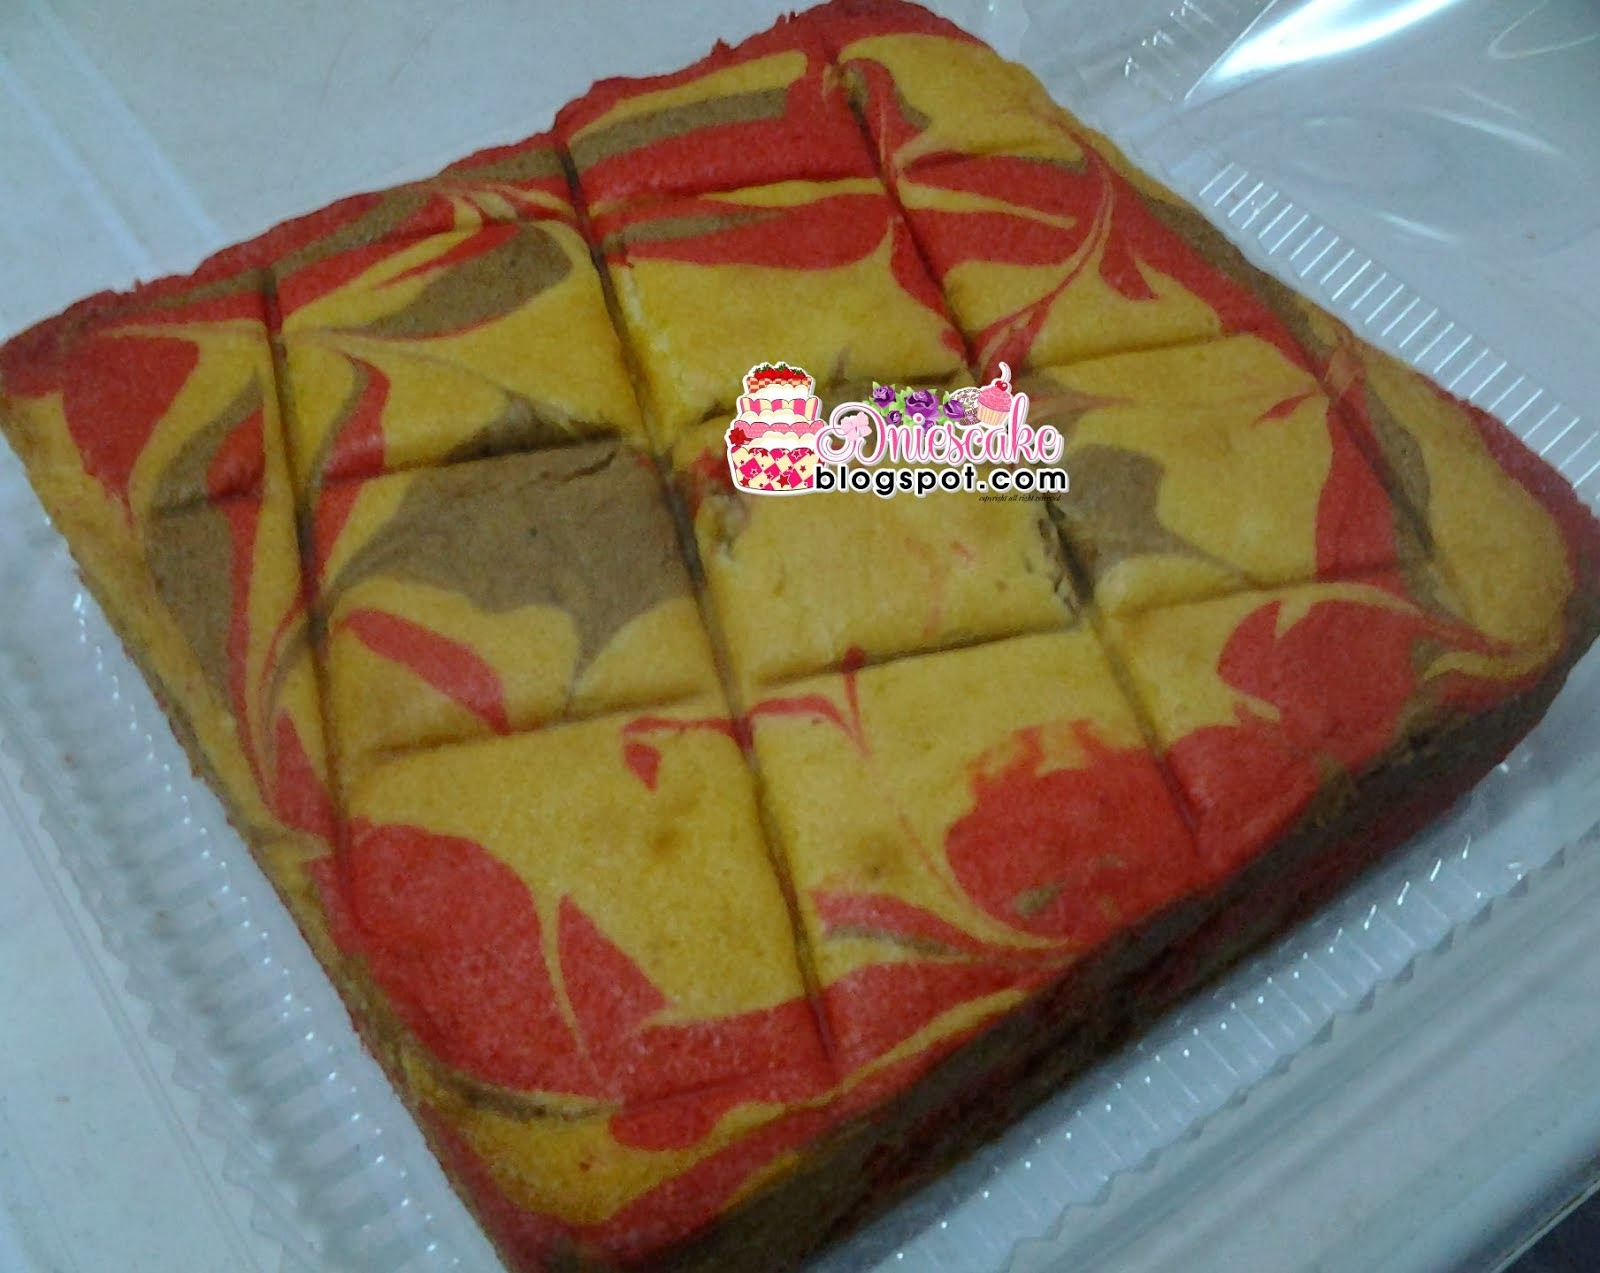 Butter Tradisional Cake